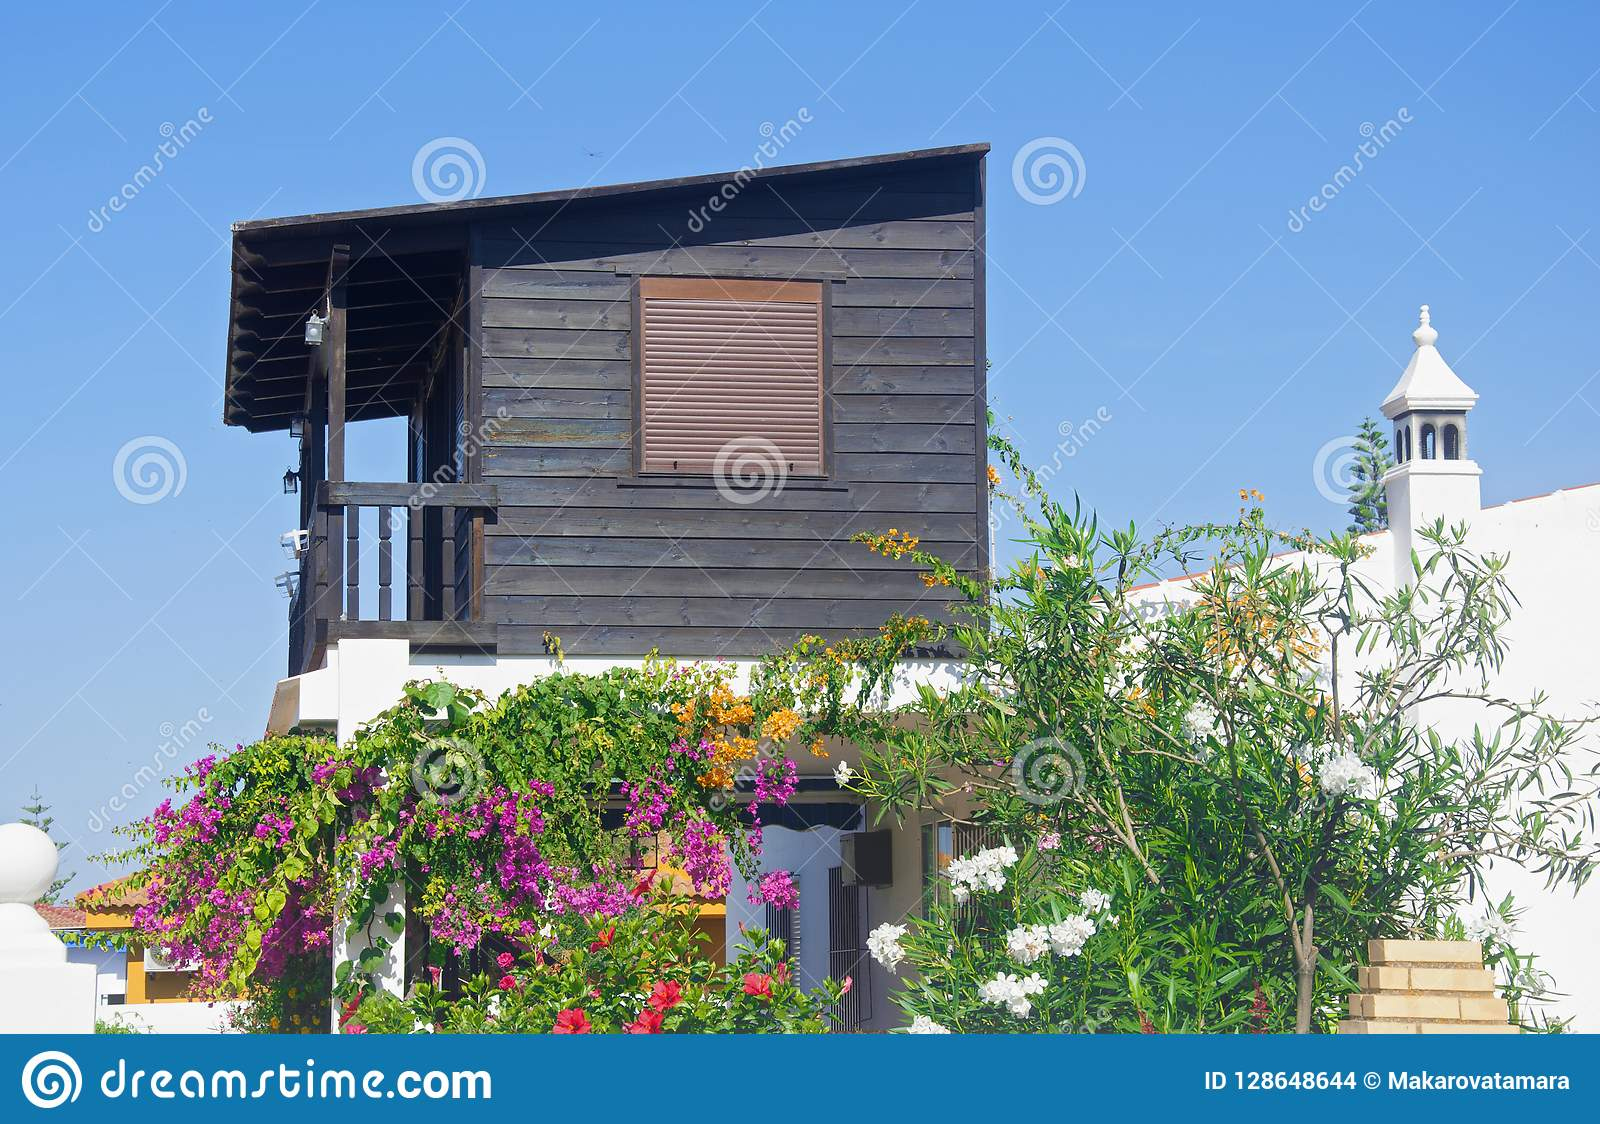 petite maison en bois avec des fleurs photo stock image. Black Bedroom Furniture Sets. Home Design Ideas